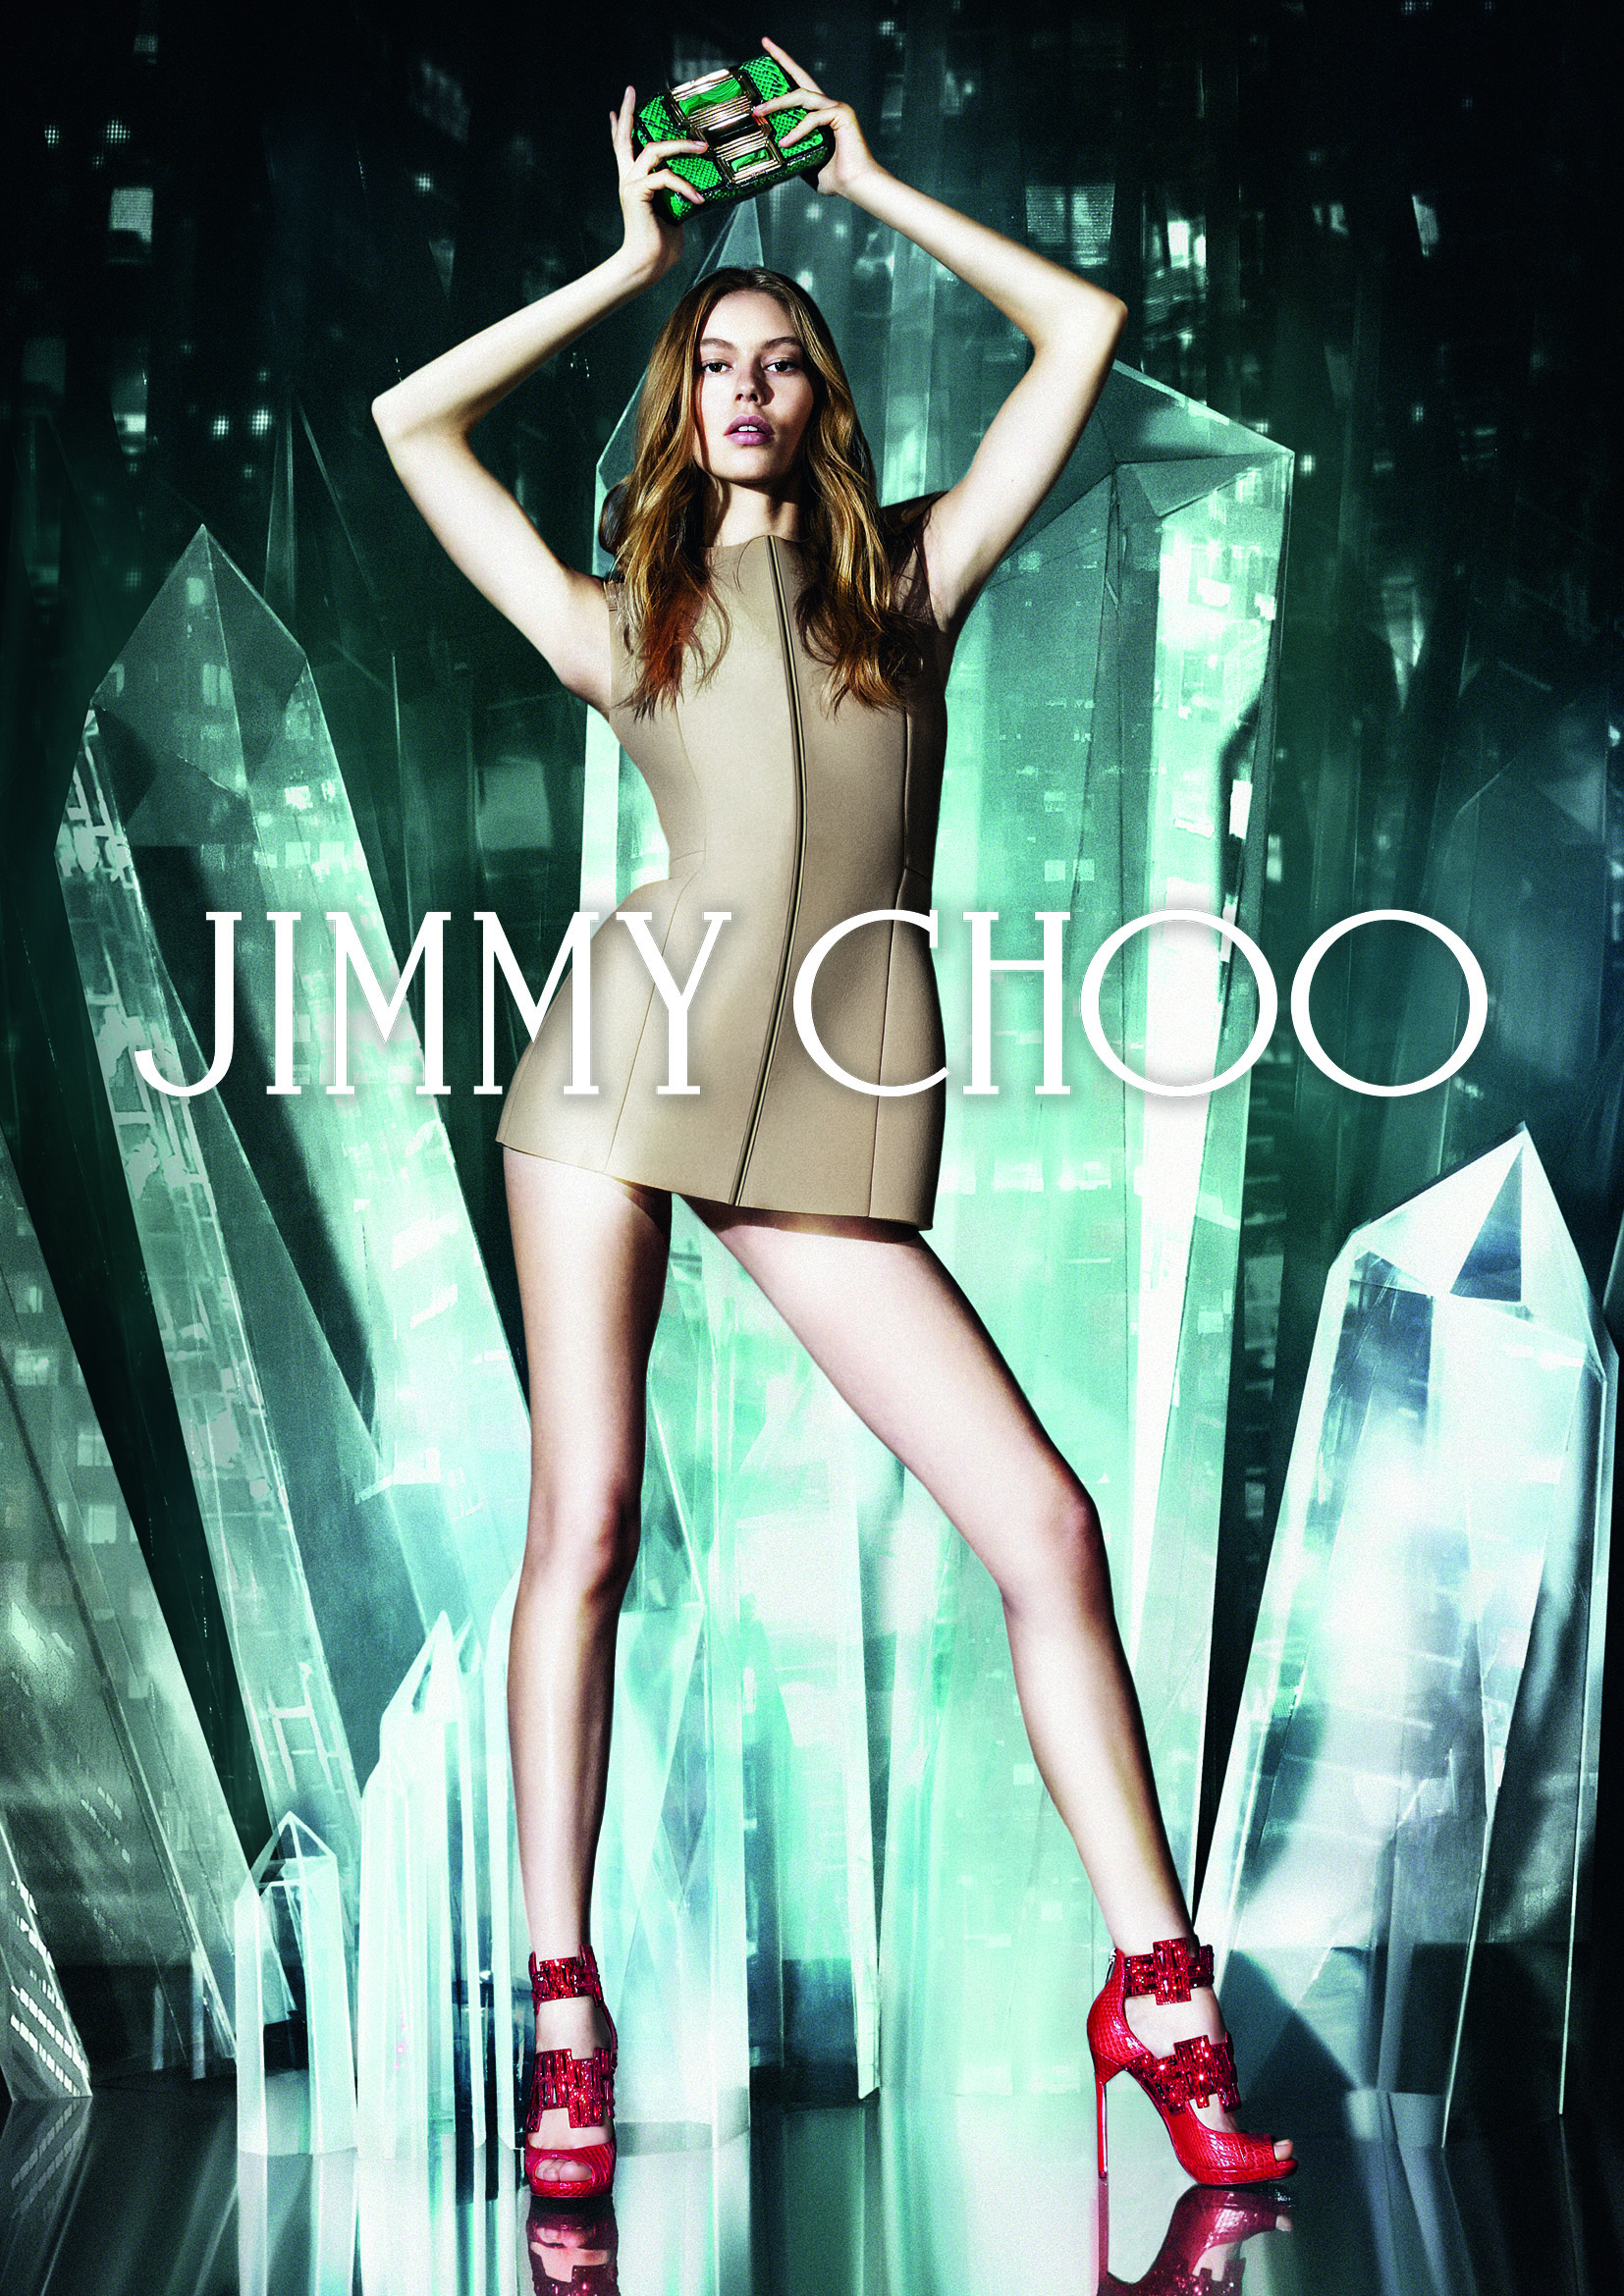 V.COM_JIMMYCHOO_VICES_SKETCHES_ADVERTISING - JING_AVA